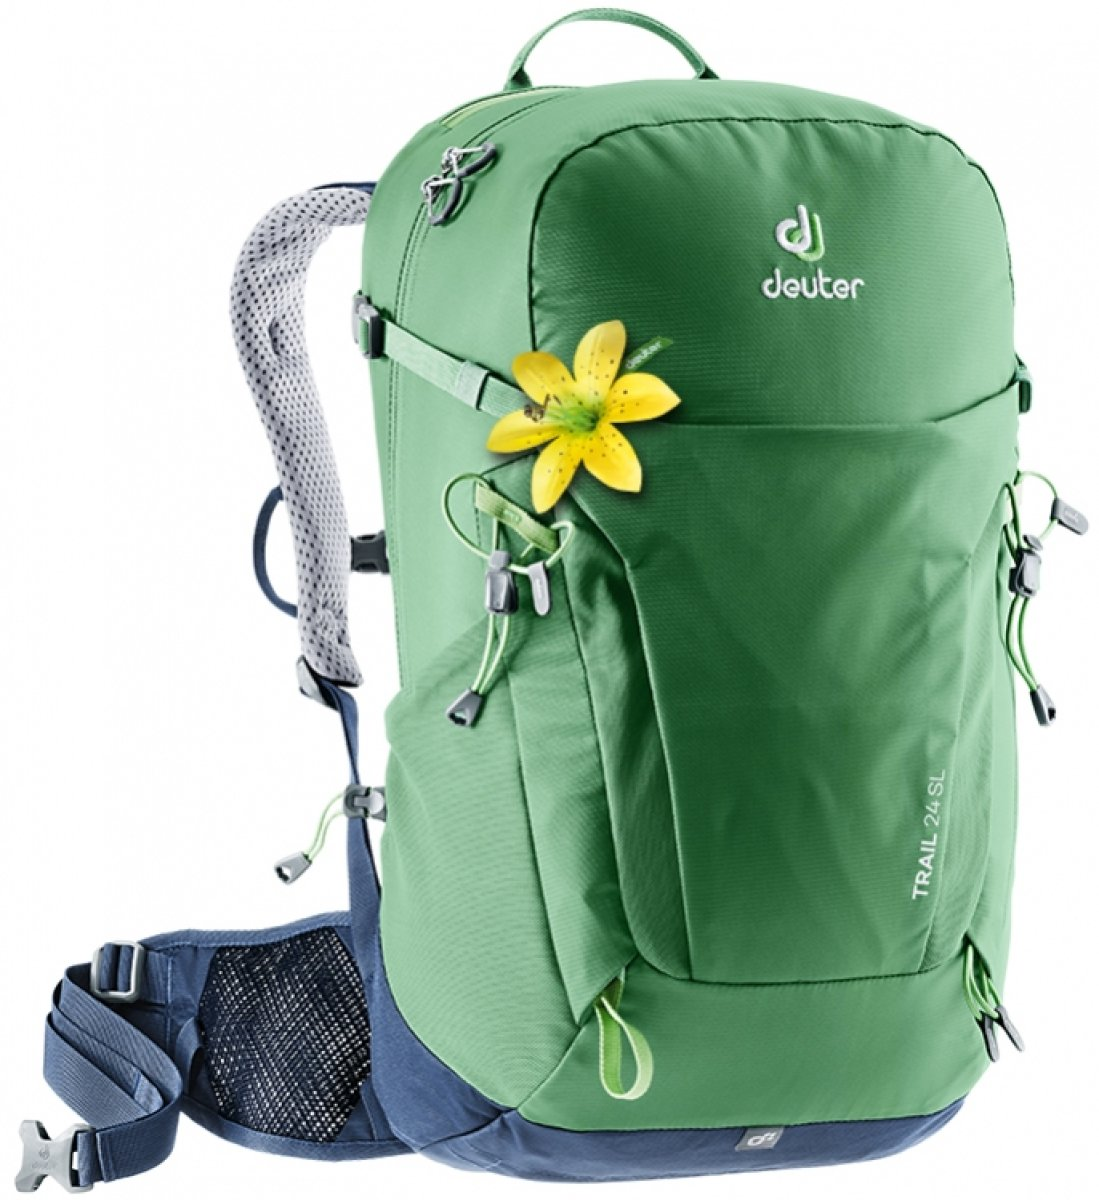 Рюкзак Deuter Trail 24 SL цвет 5322 maron-navy 2 Рюкзак Deu1ter Trail 24 SL цвет 2326 leaf-navy 3440219 5322